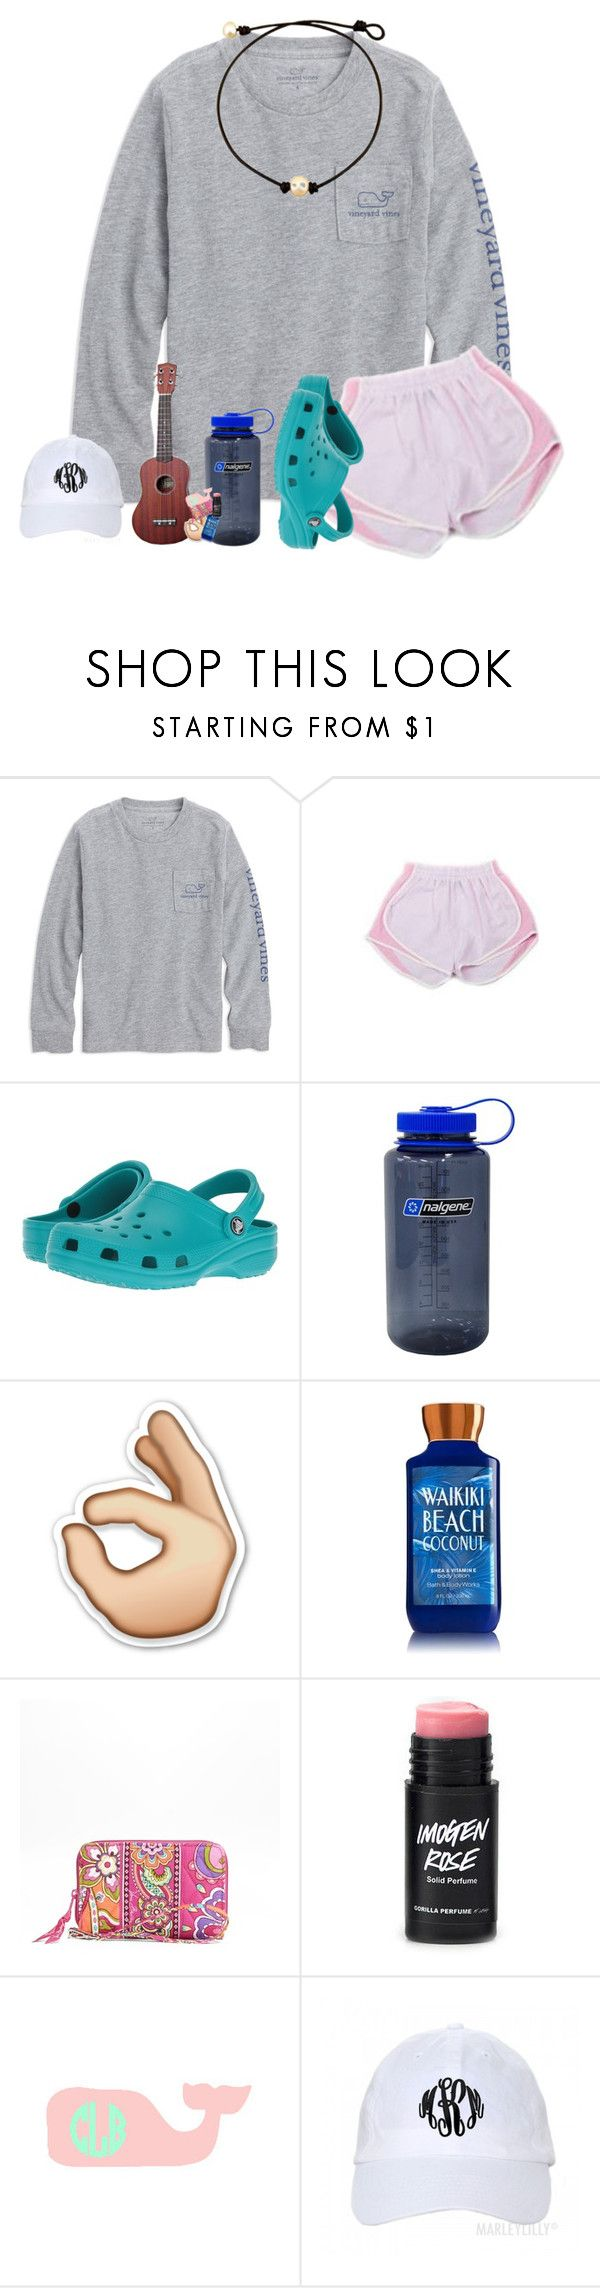 """crocs❤️"" by southernmermaid ❤ liked on Polyvore featuring Crocs, Nalgene and Vera Bradley"